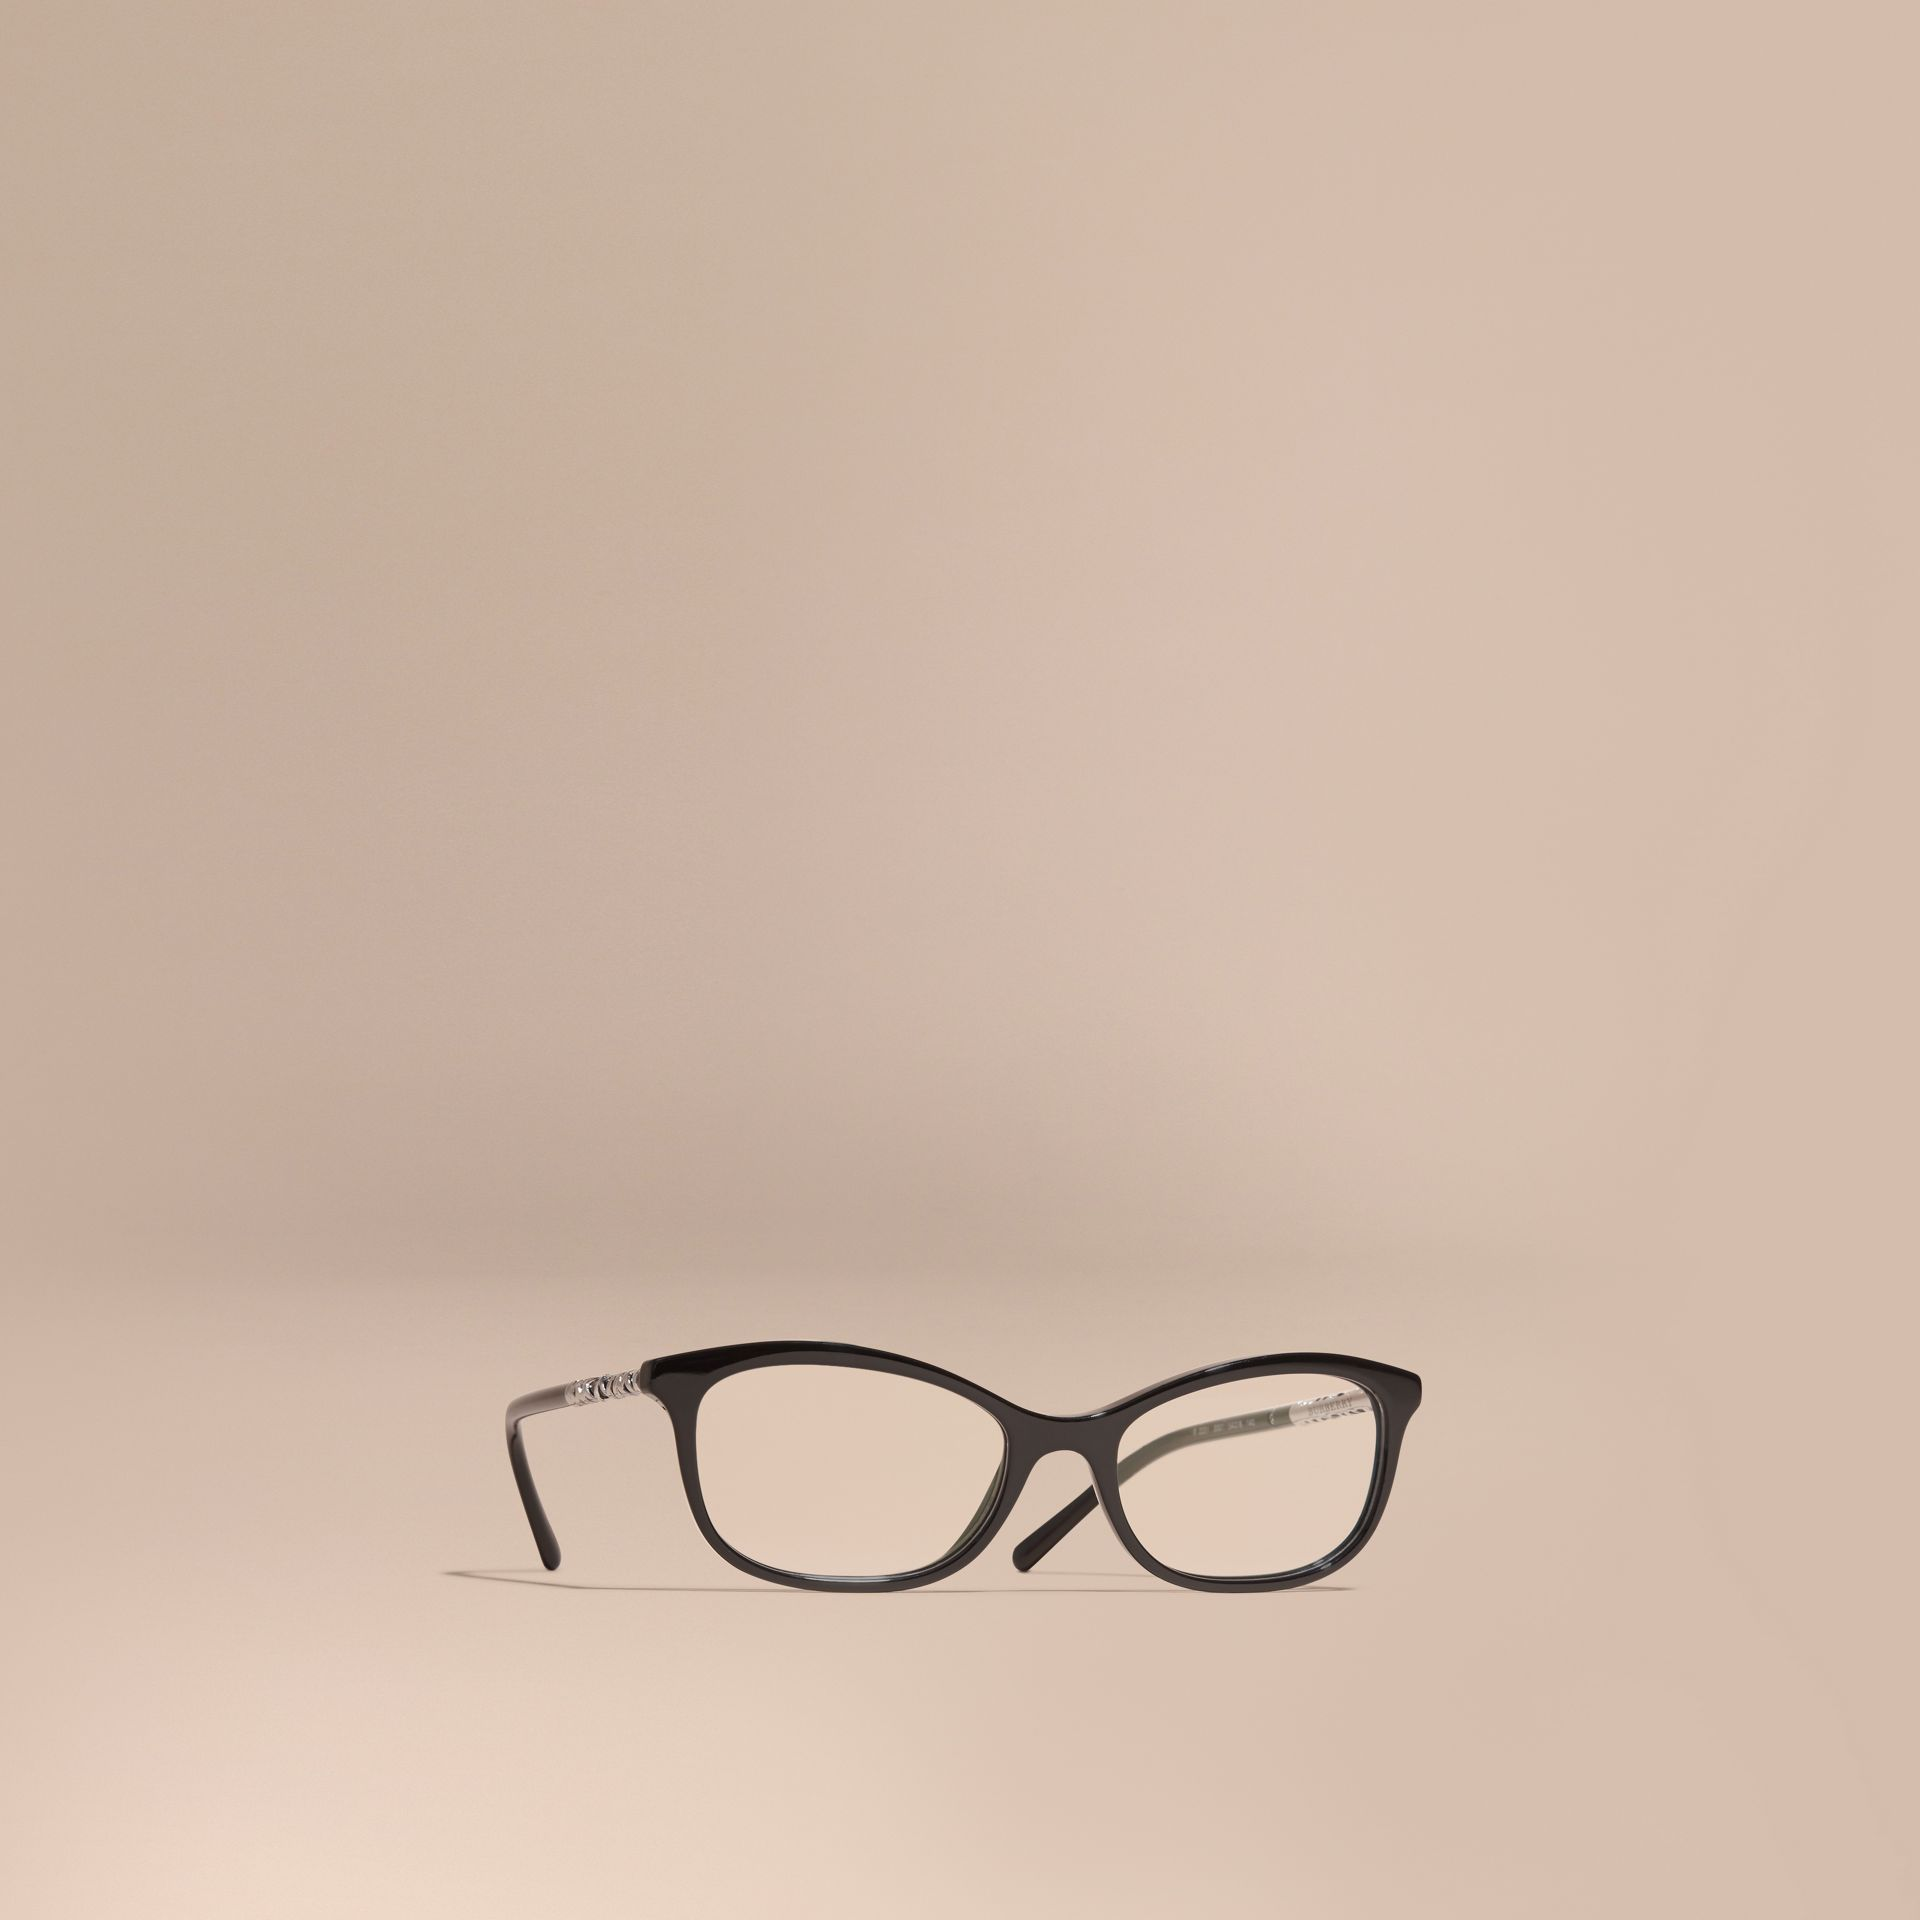 Black Check Detail Oval Optical Frames Black - gallery image 1